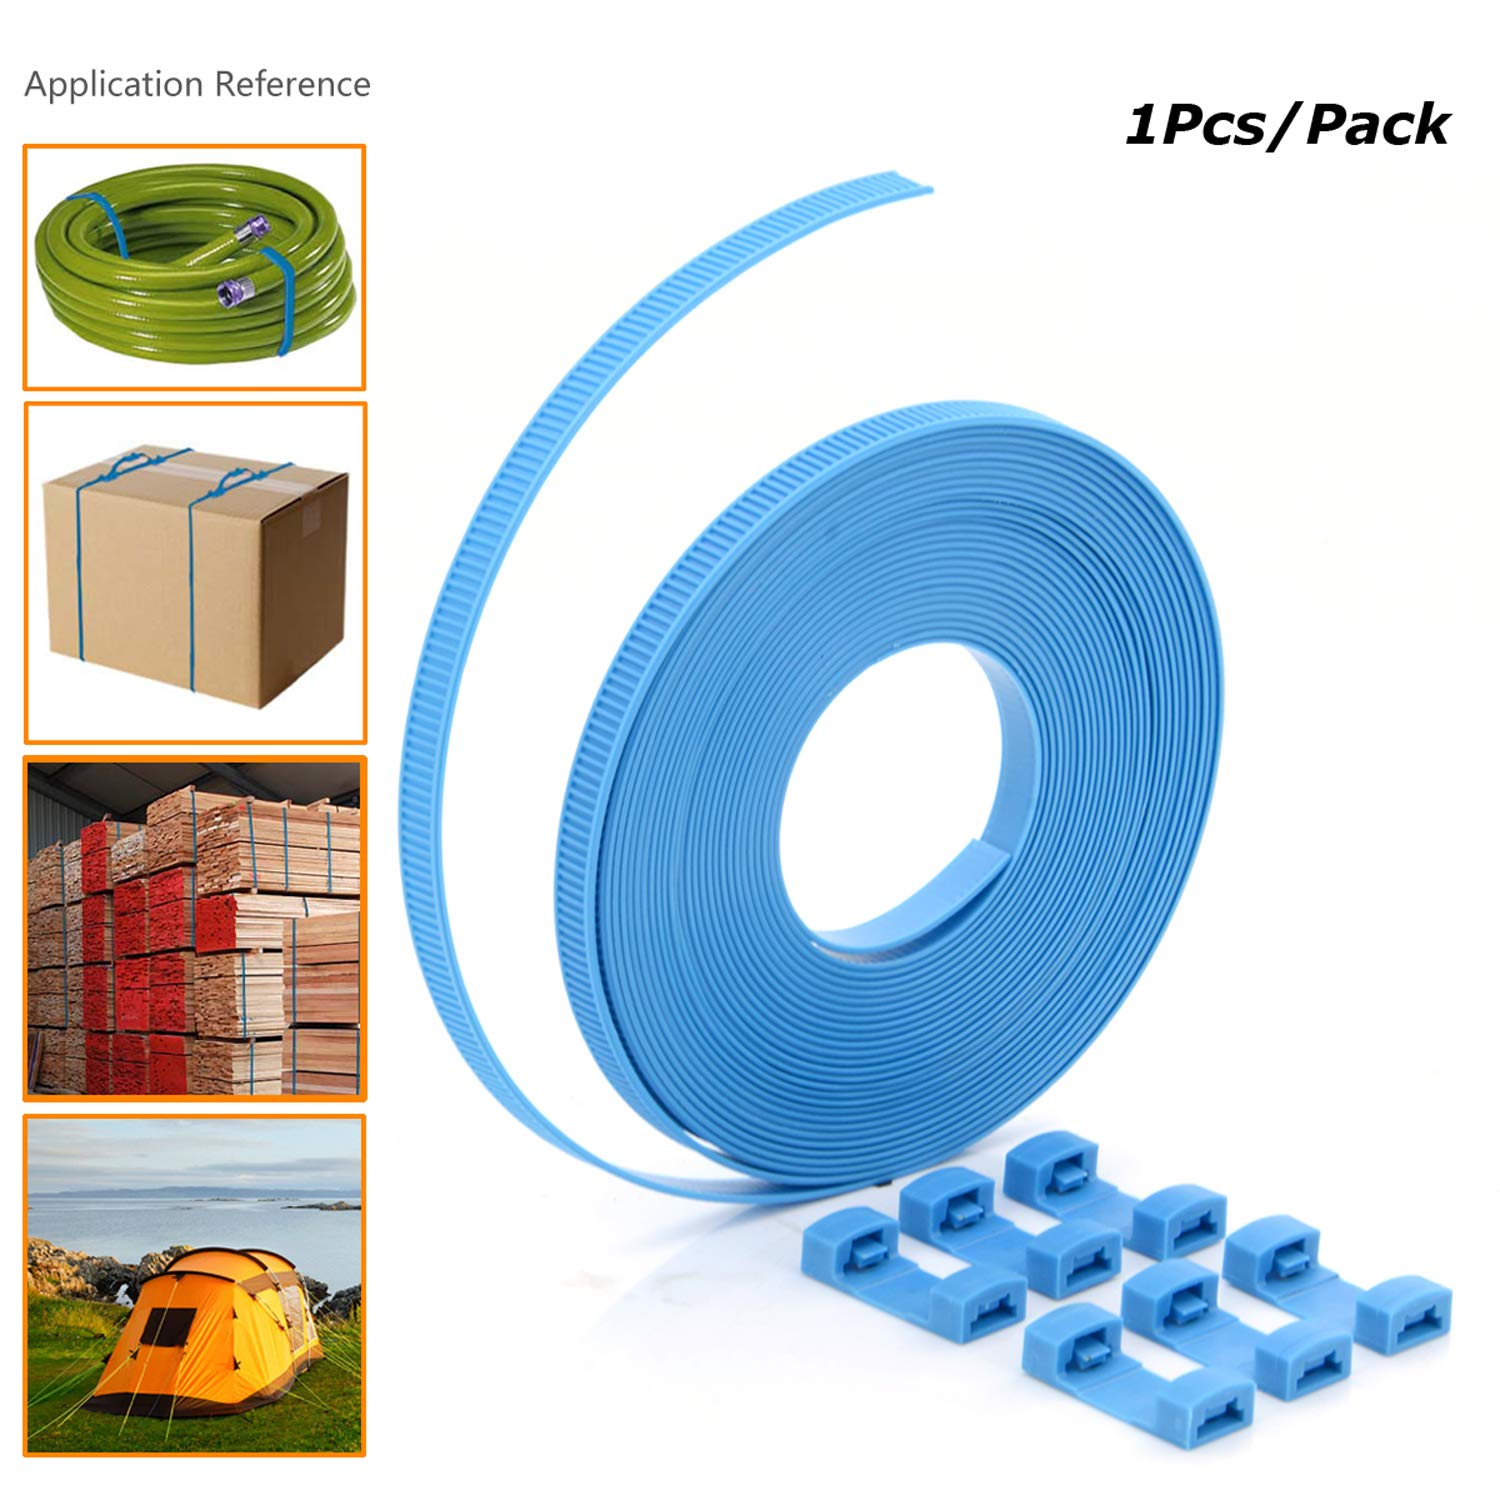 Zip Ties,U-TIMES Nylon Cable Ties For Binding Baggage Cargo,Ultra Long 8 Meters Cable Roll With Connectors - Without Scissors - 1 Pcs/Pack by UTIMES (Image #2)